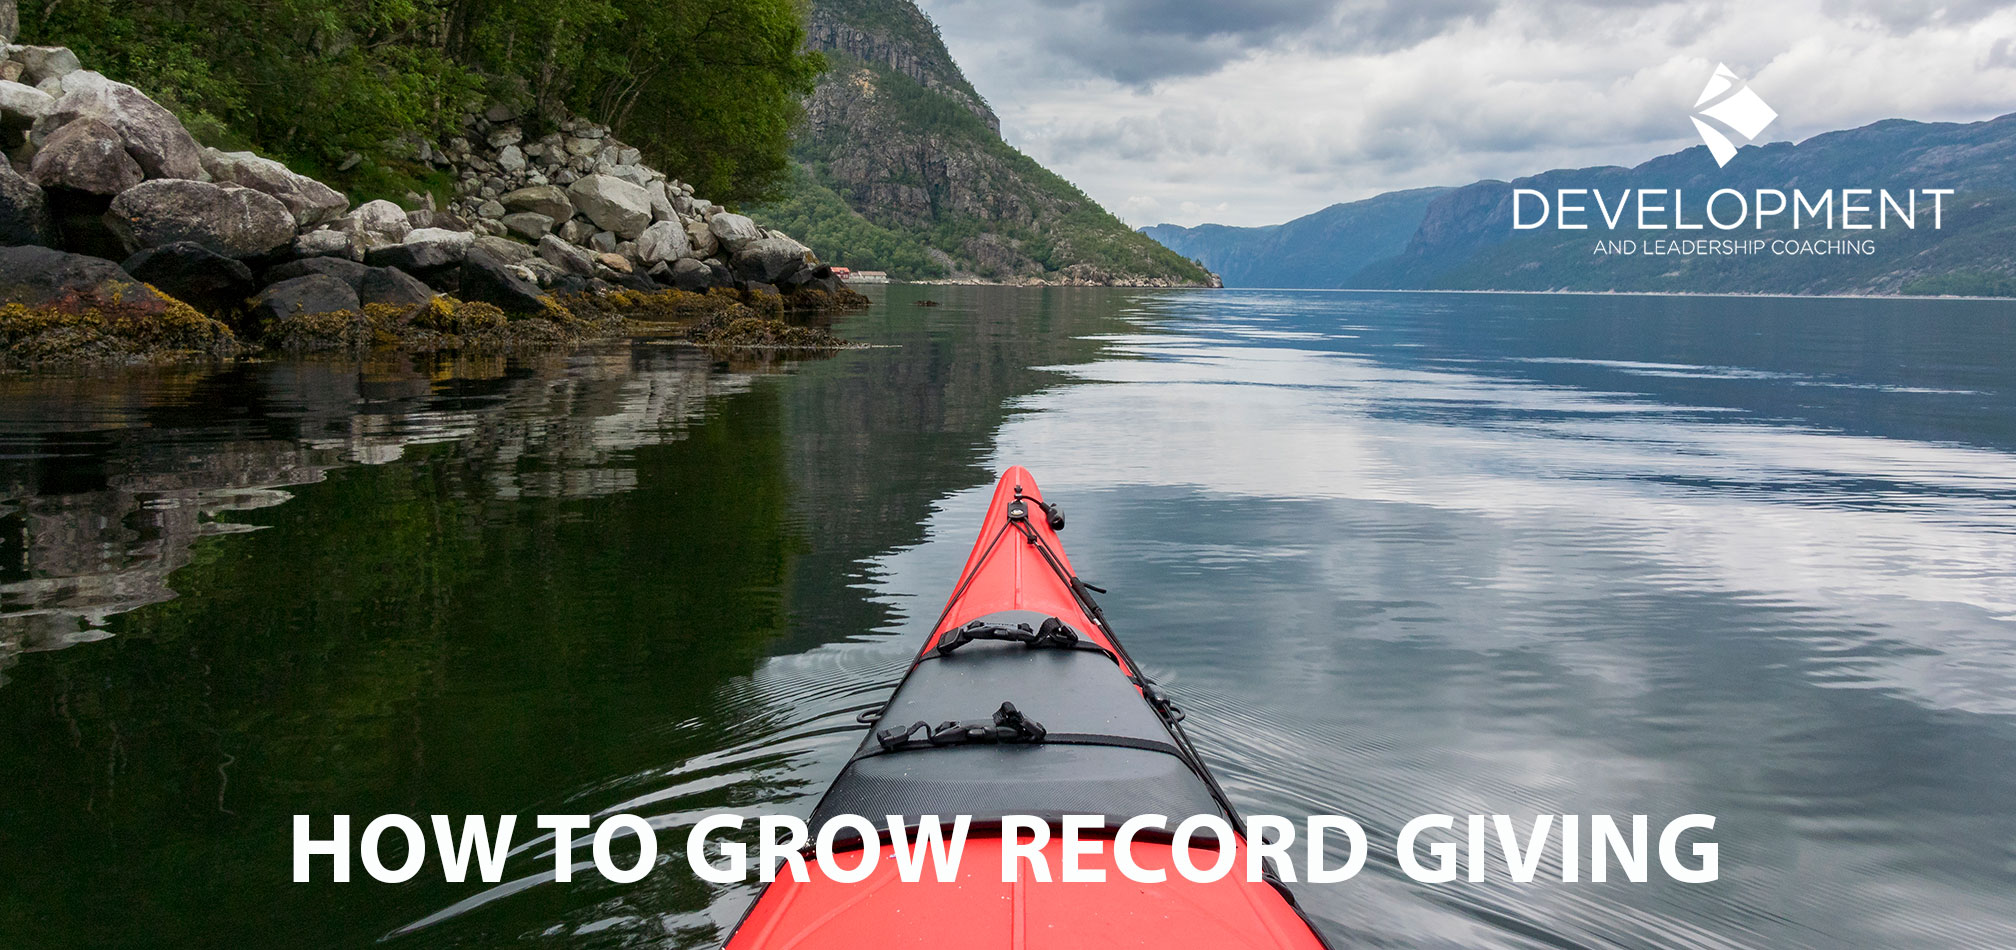 Renewanation: How to Grow Record Giving